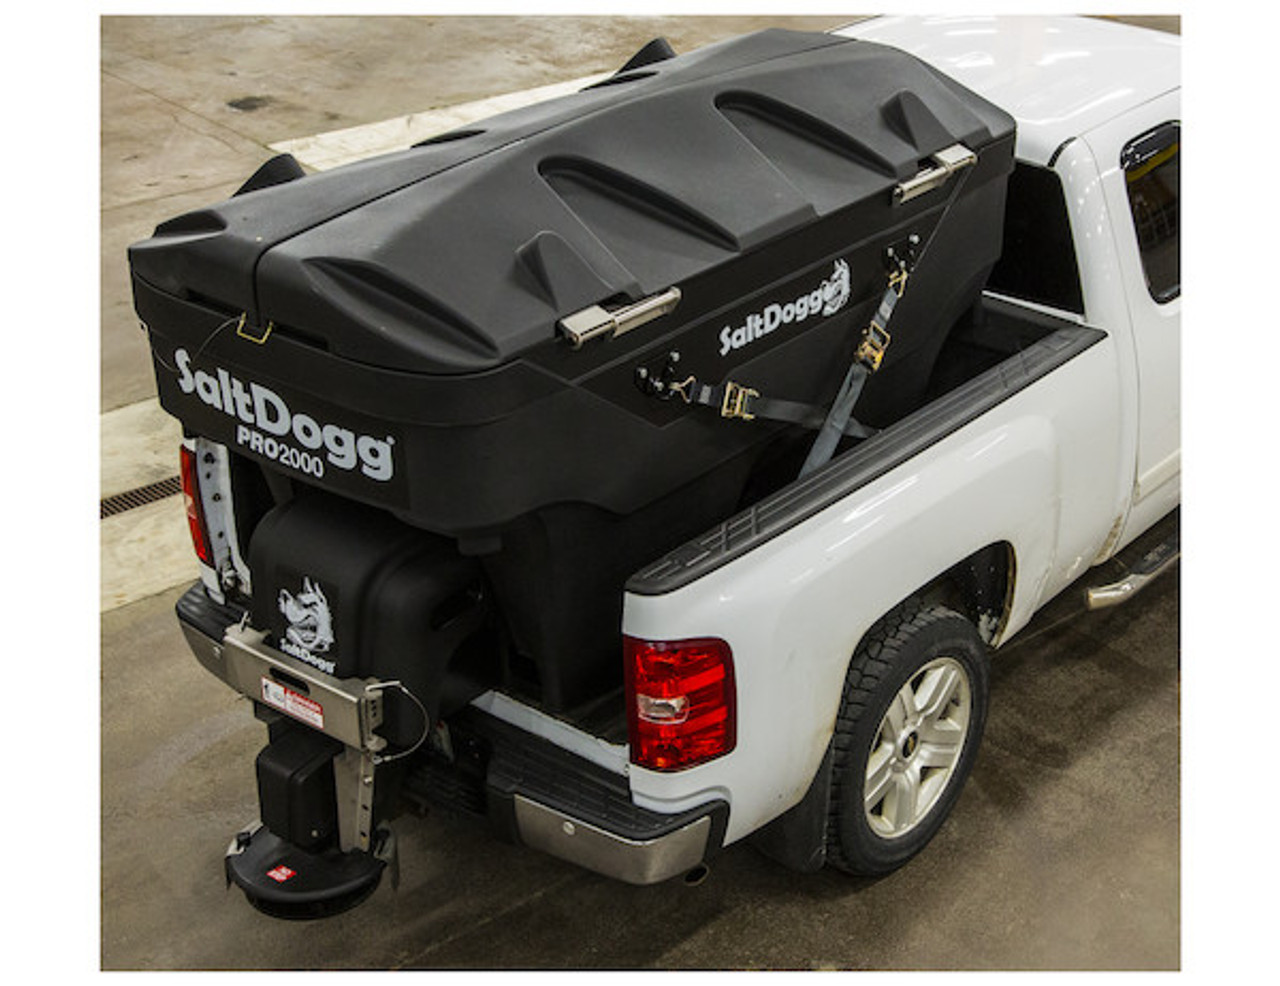 PRO2000 BUYERS SALTDOGG ELECTRIC POLY HOPPER SPREADER WITH AUGER  SHOWN WITH SALTDOGG EZ LID (LID SOLD SEPARATELY)